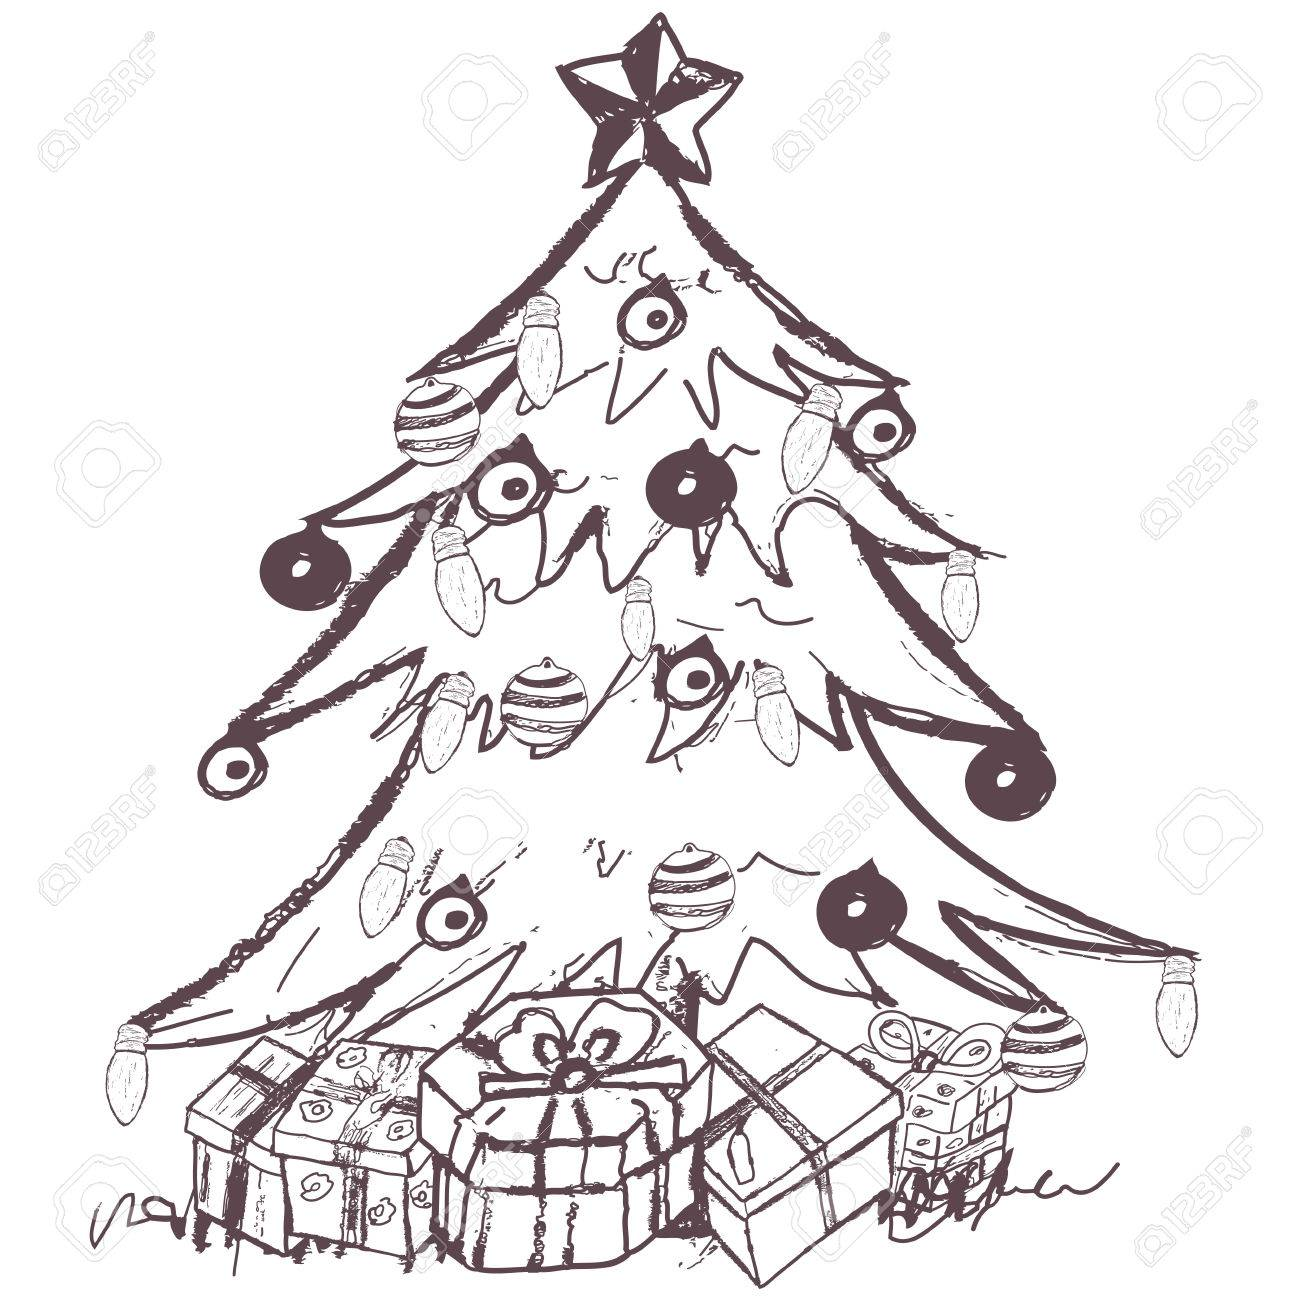 Hand Drawn Doodle Sketch Of A Christmas Tree With Presents Royalty